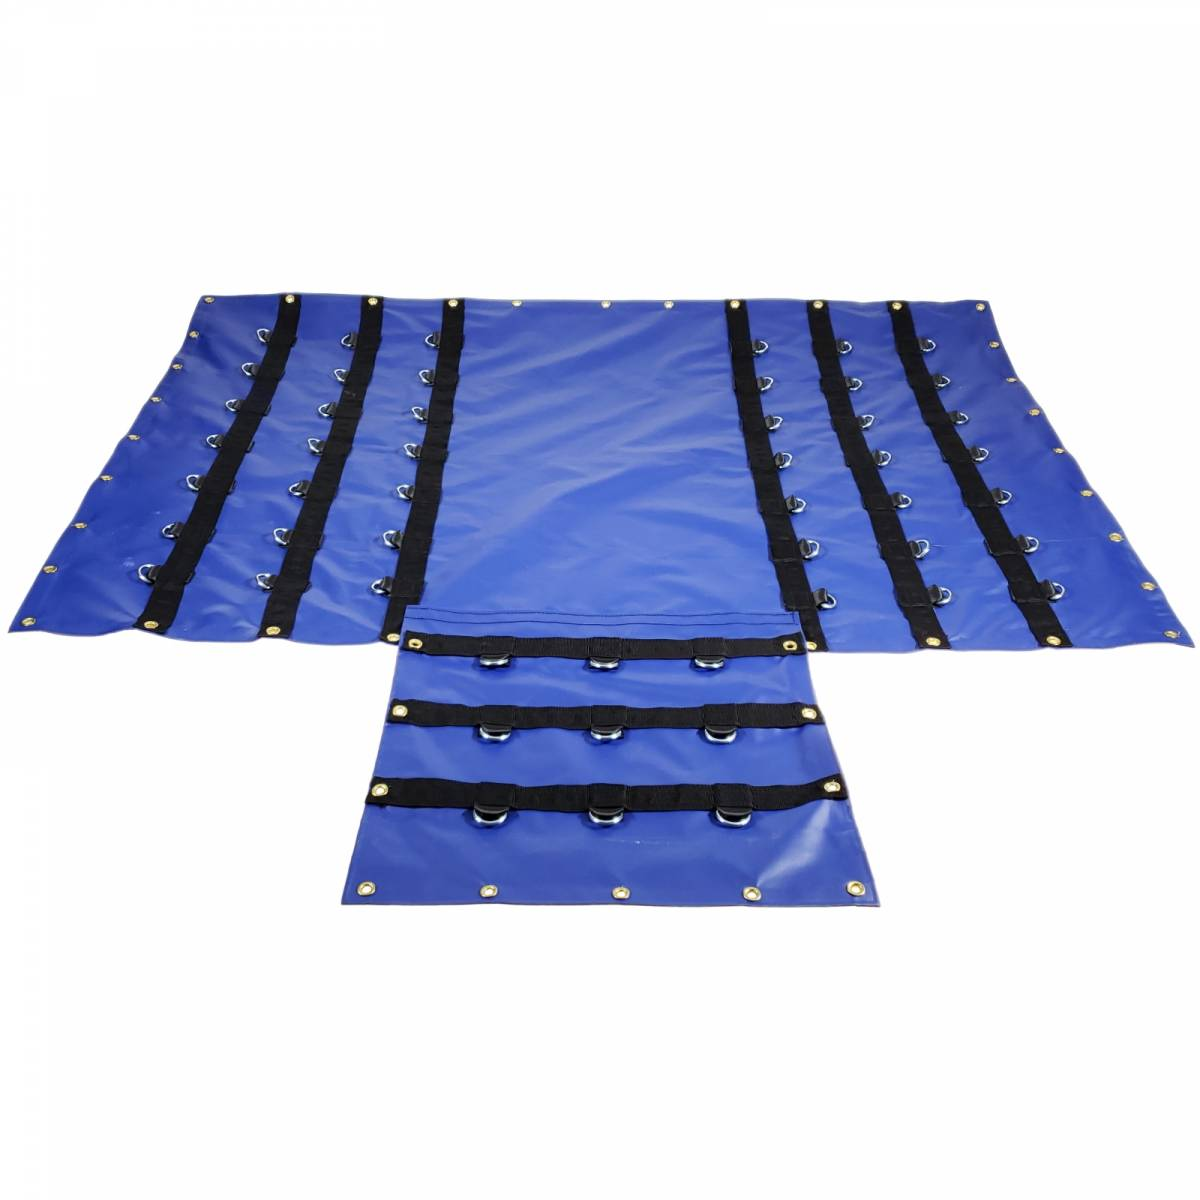 24 X 17 3 Quot Vinyl Lumber Tarp With Flap For Flatbed Truck